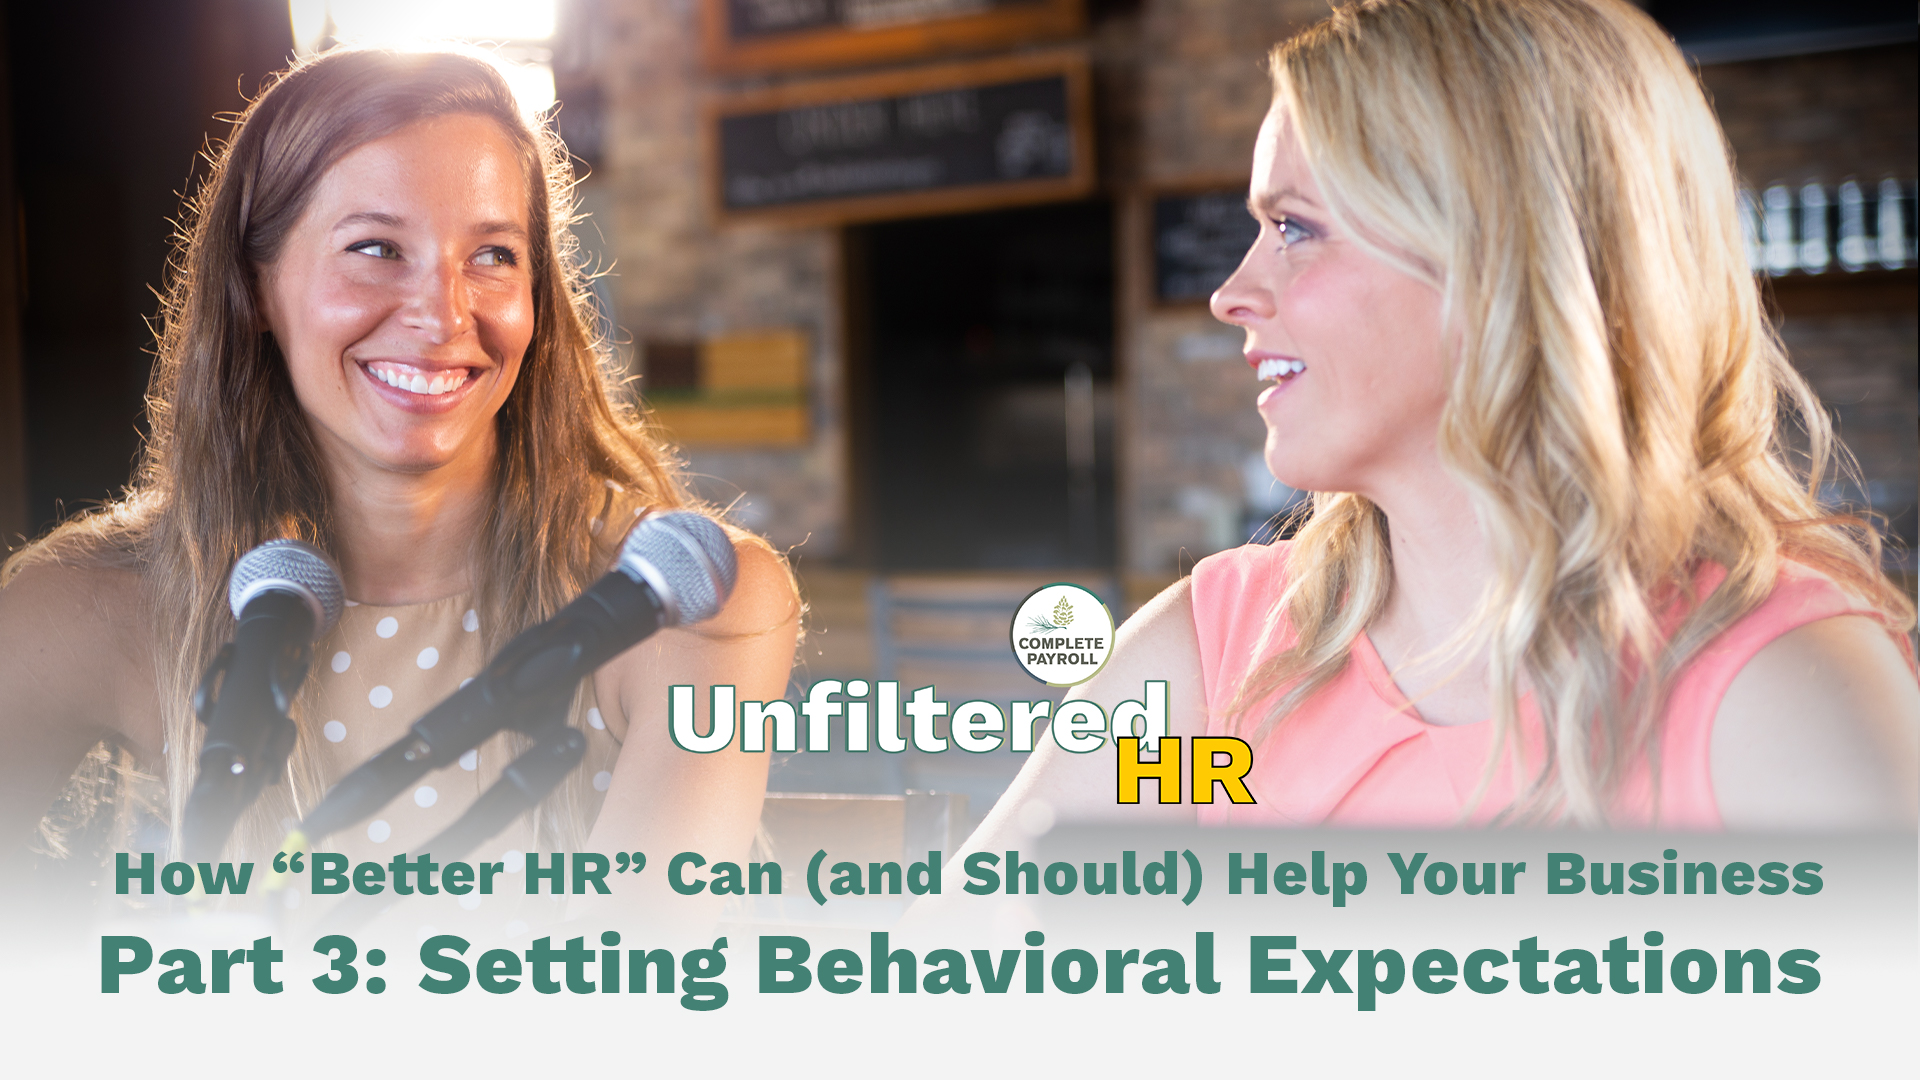 Five Lessons for Better HR, Part 3: Setting Behavioral Expectations | Unfiltered HR